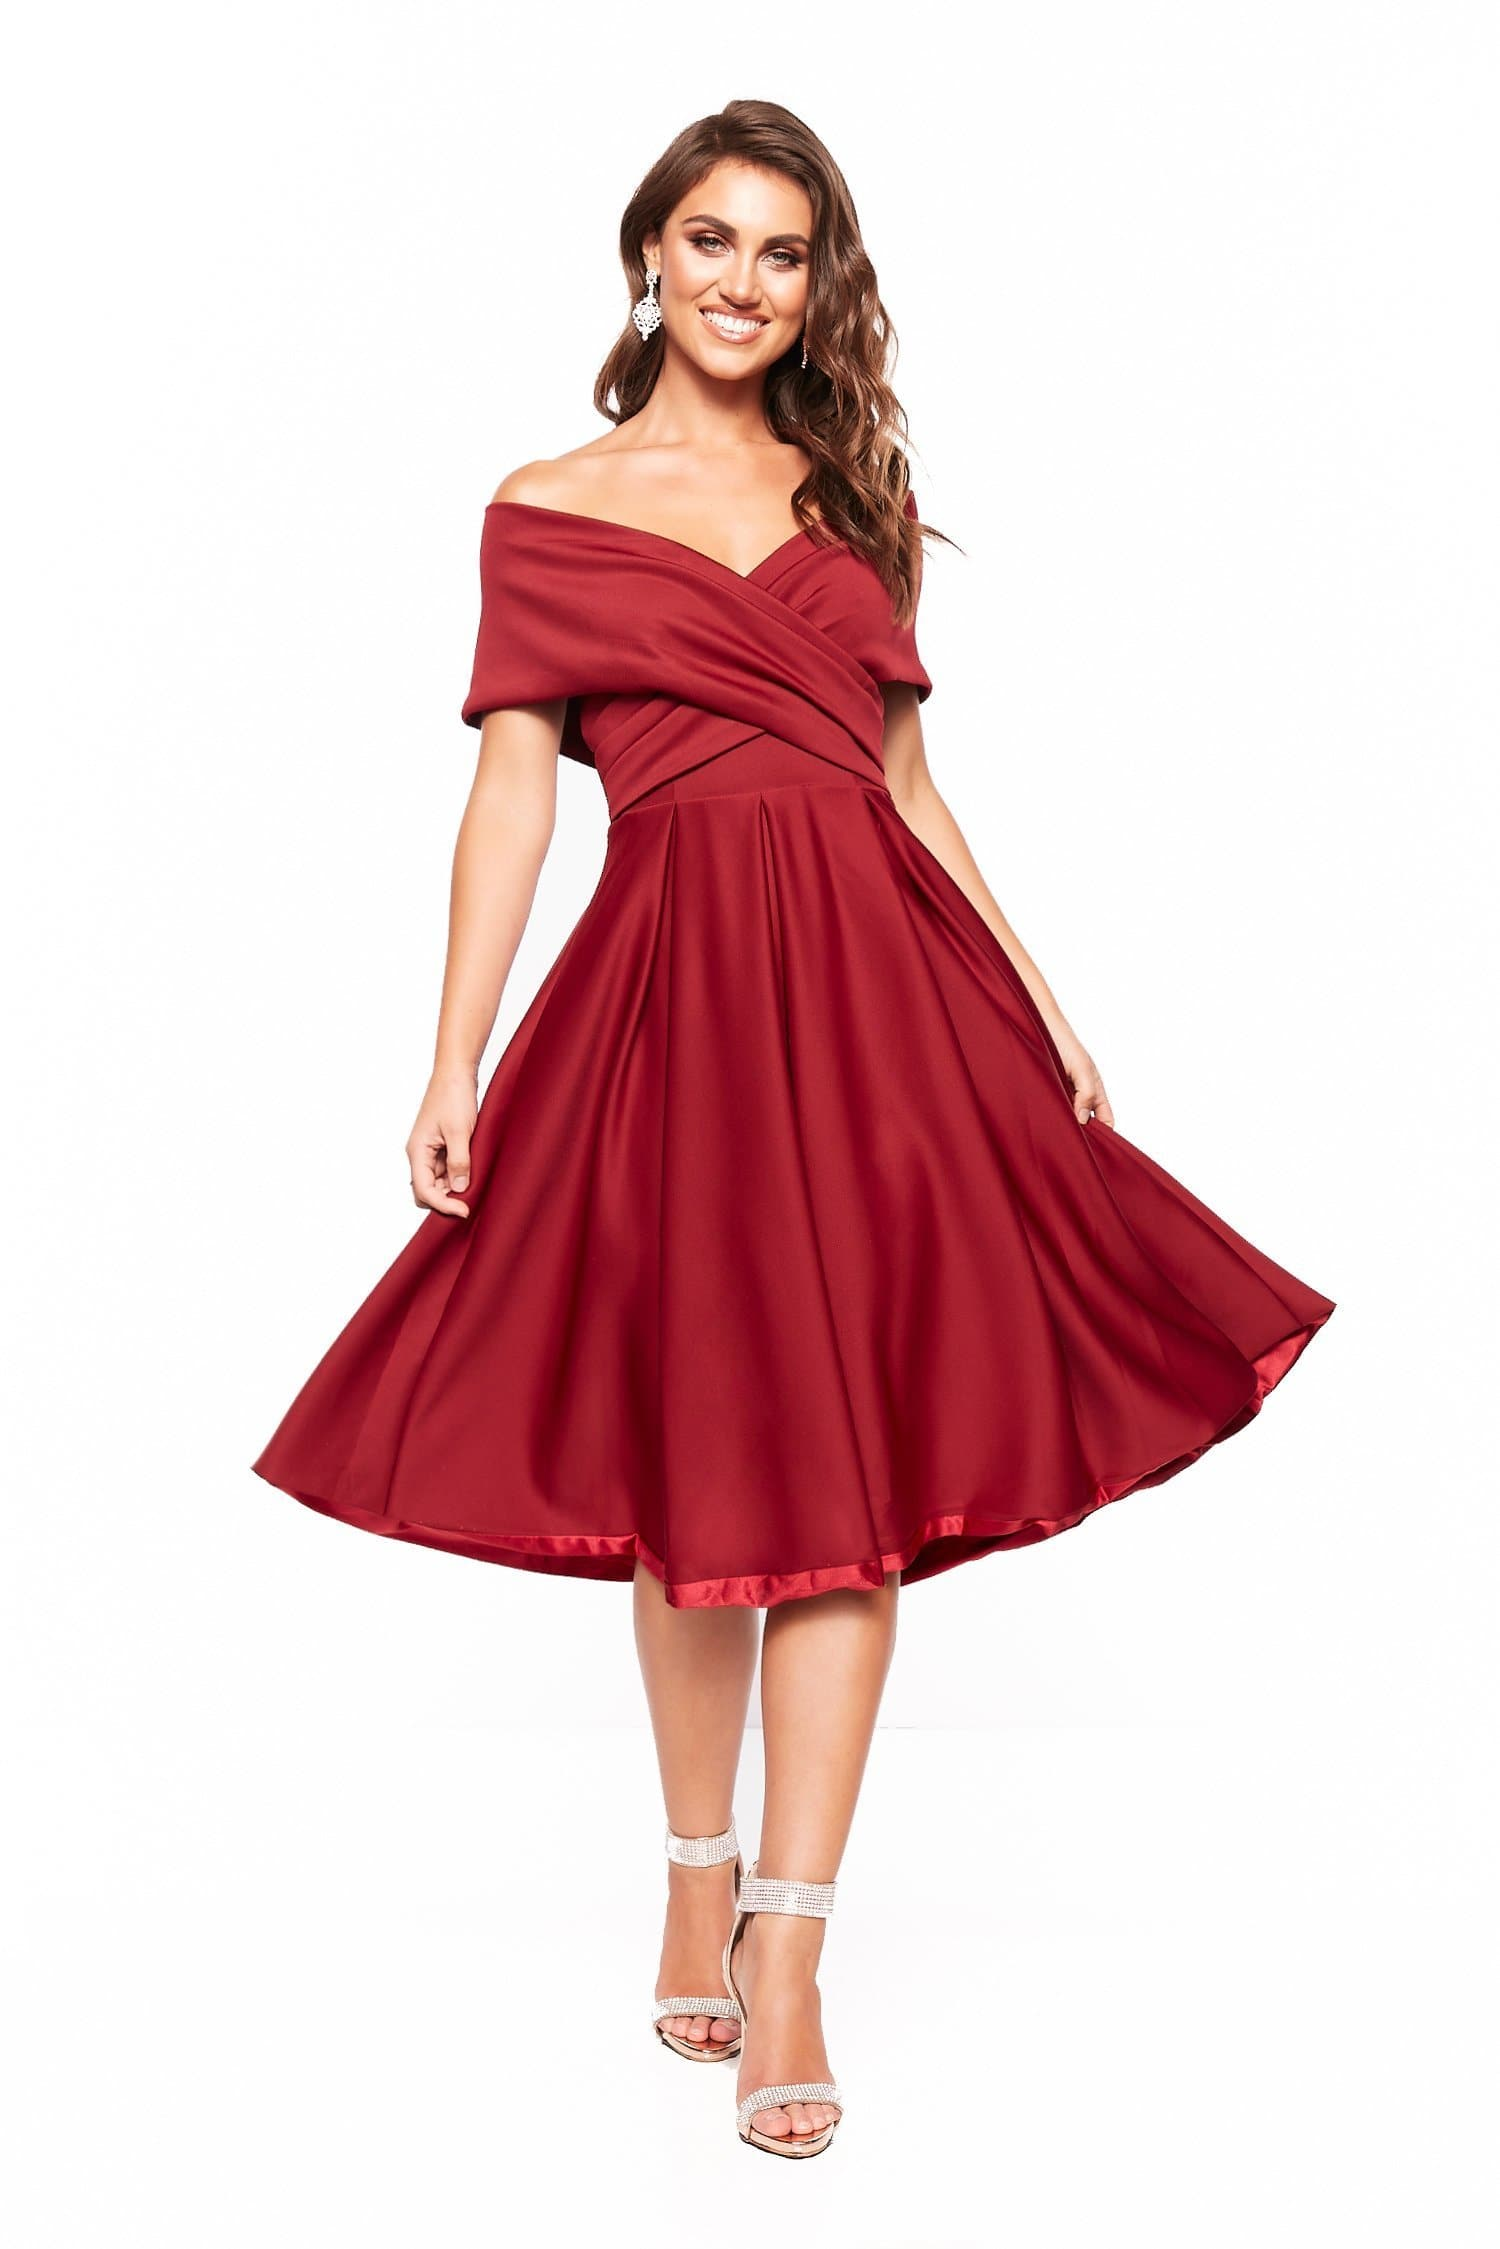 ecfc333f A&N Elyse Flowing Off-Shoulder Cocktail Dress - Burgundy – A&N Luxe ...